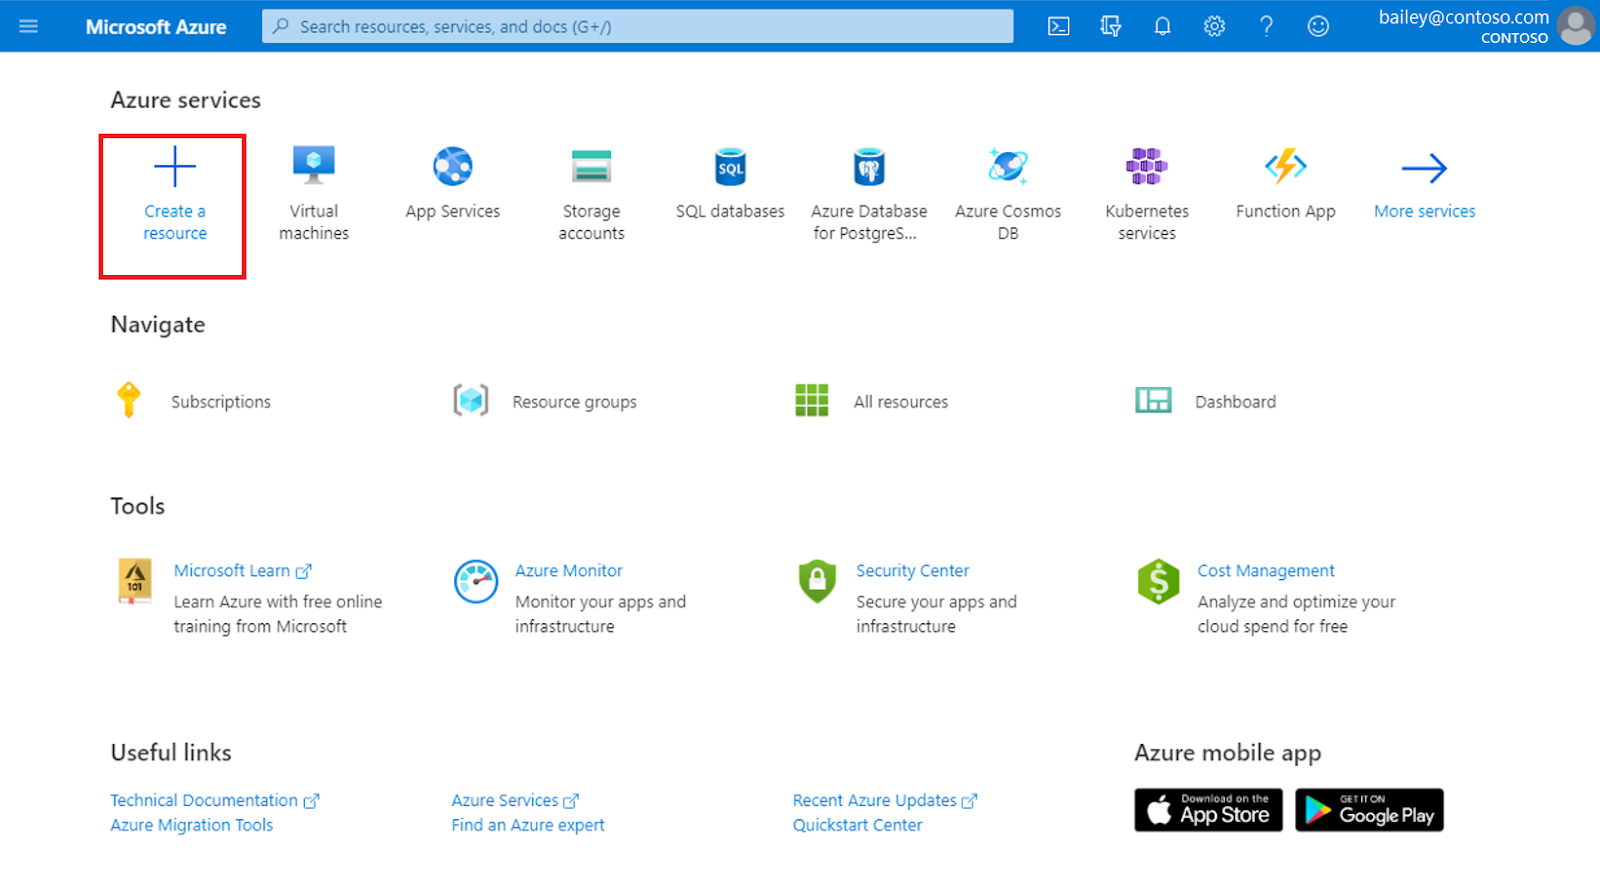 Selecting 'Create a resource' from the home page of the Azure portal